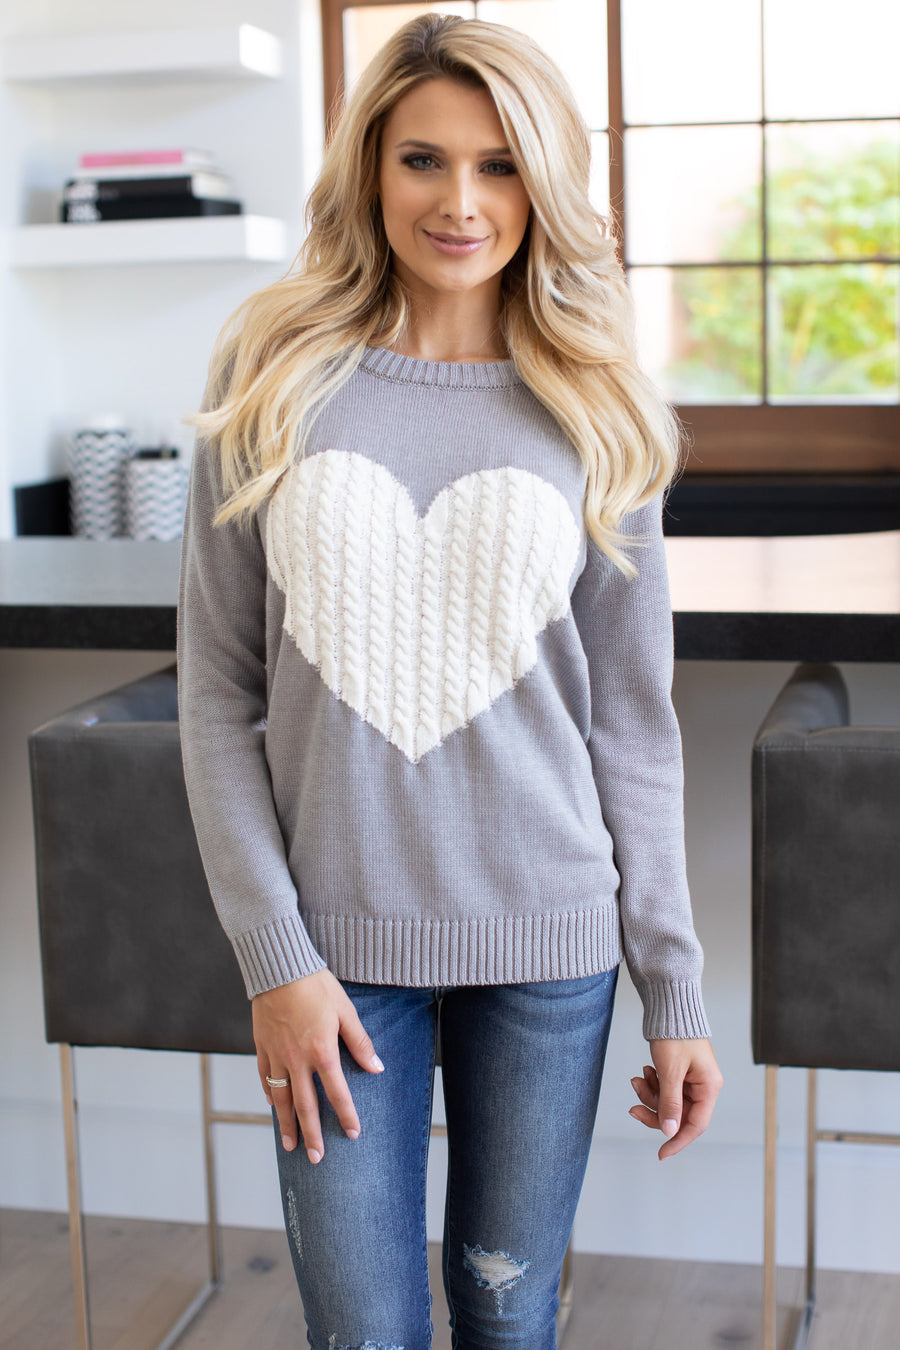 Follow Your Heart Sweater - Grey trendy women's knit sweater with heart on front, Closet Candy Boutique 1